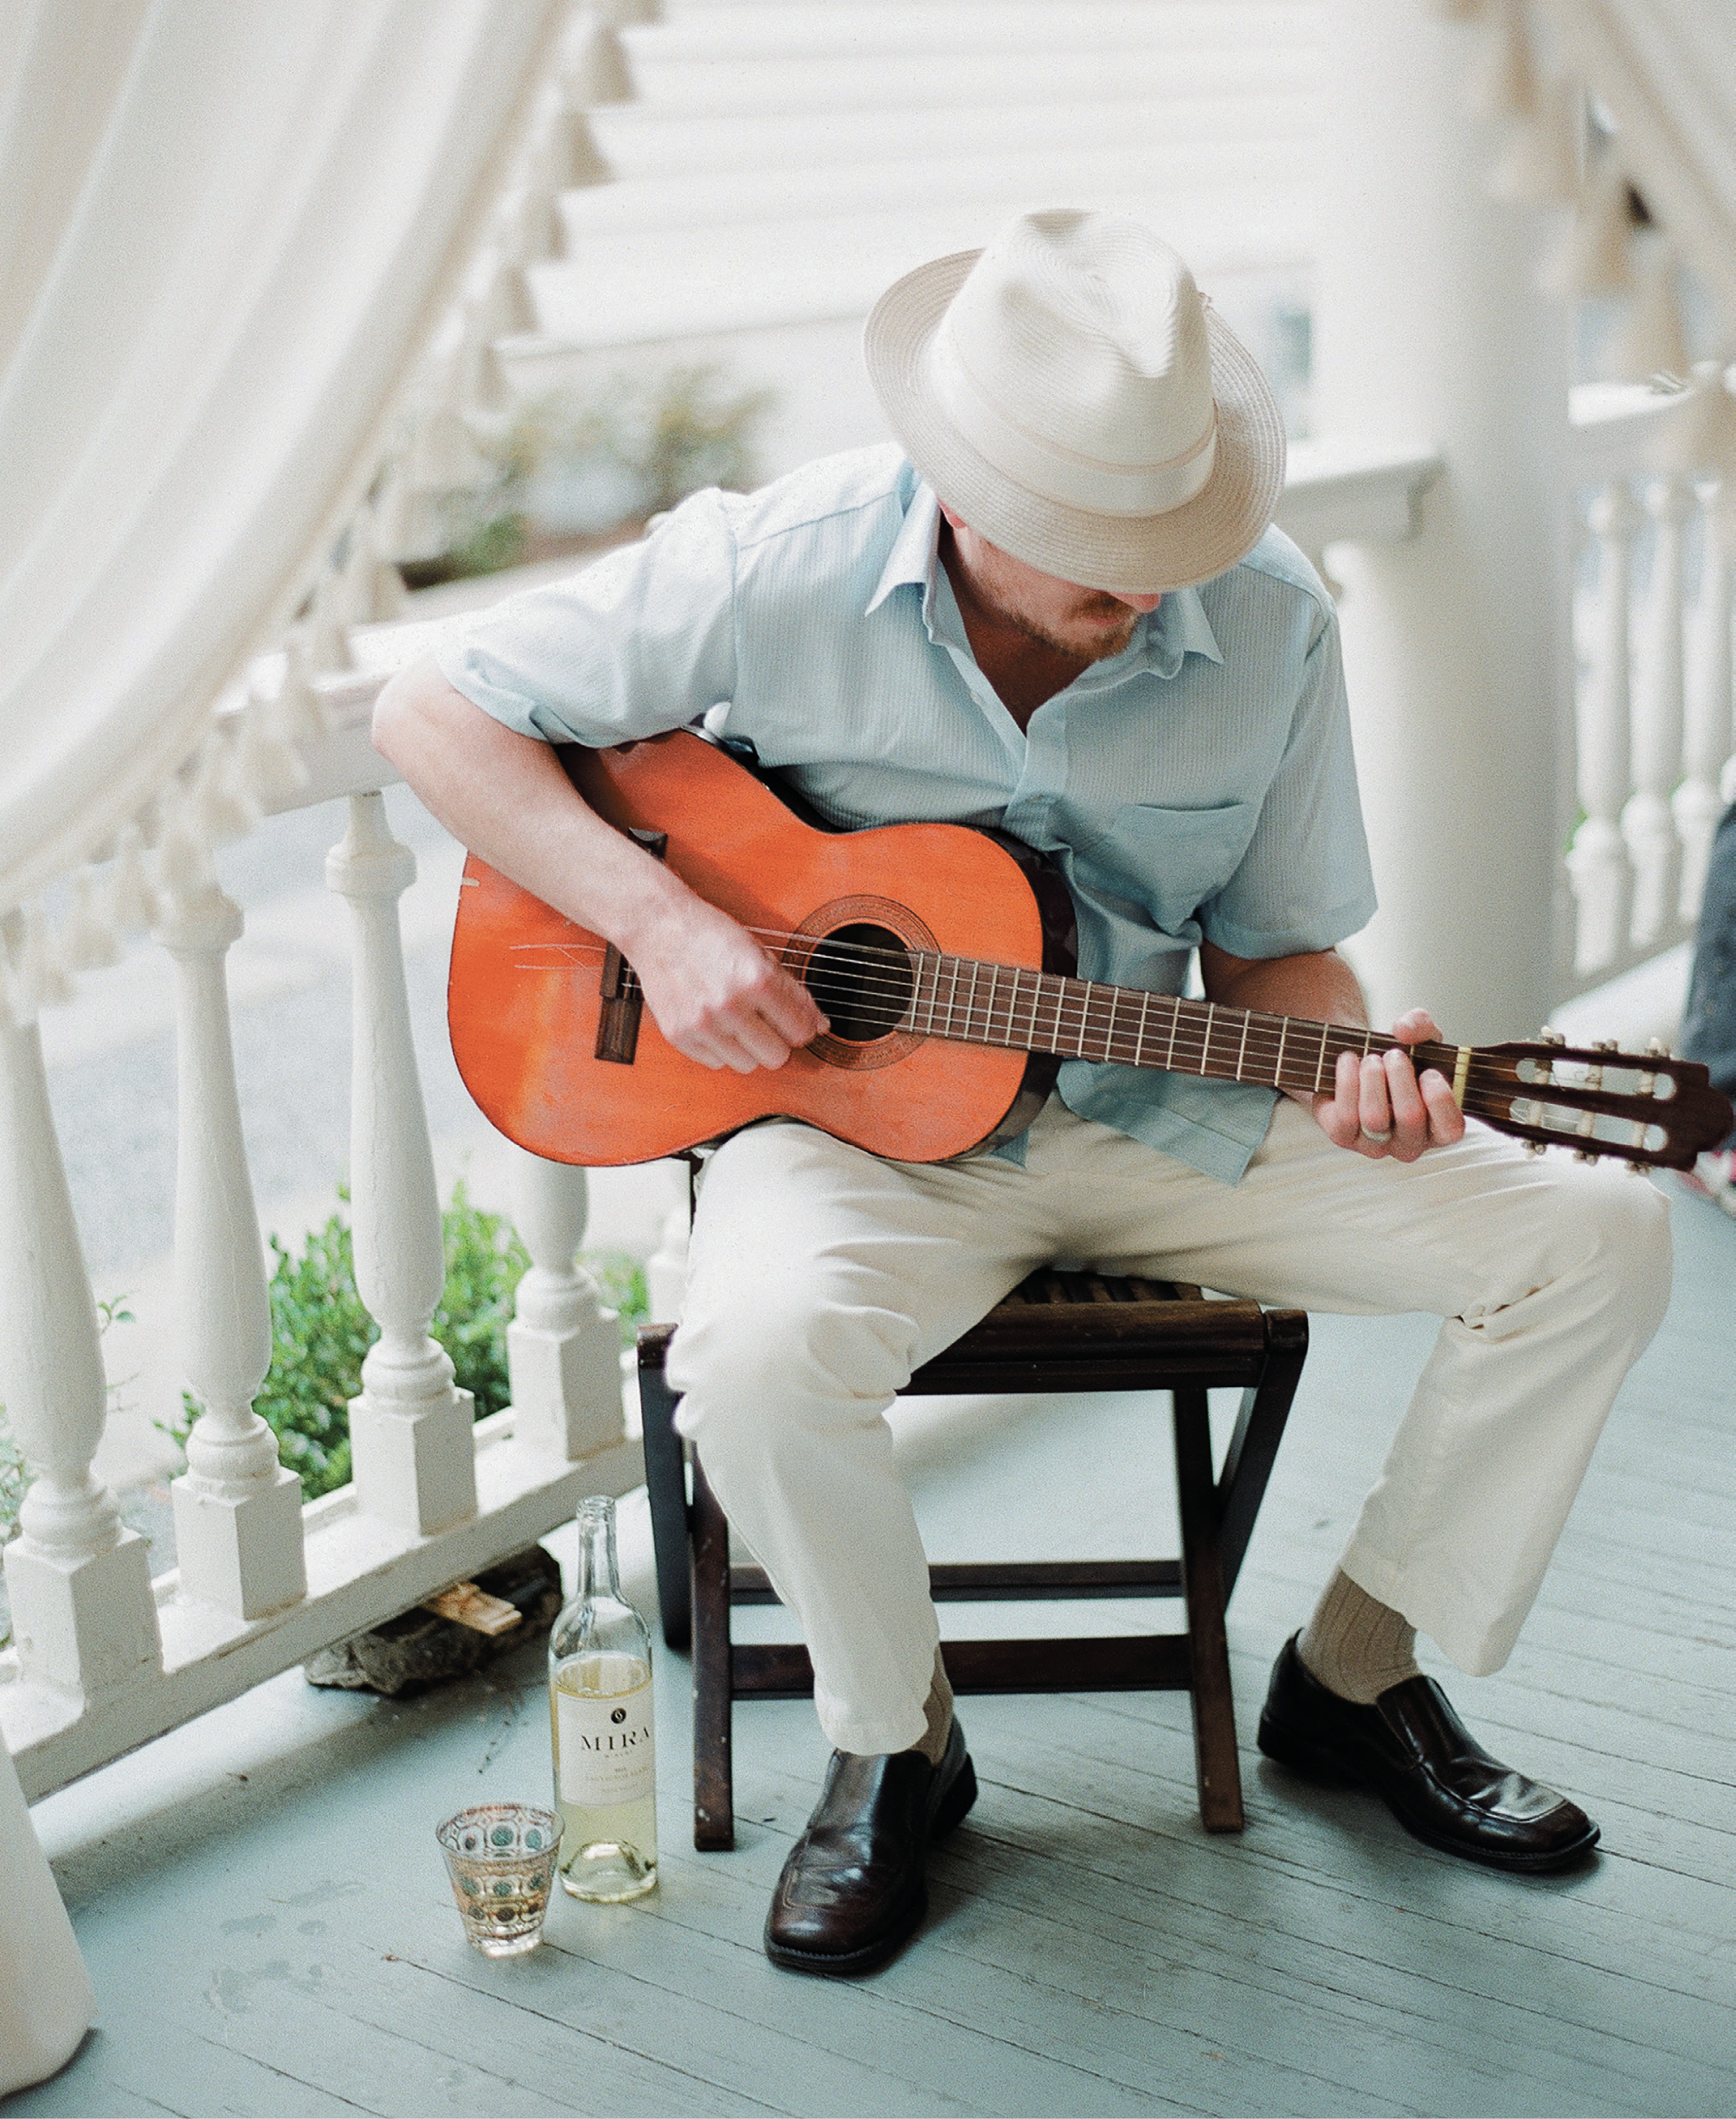 With talent in the family, Julie didn't have to rely on a digital playlist. Her musician brother, Chad Livingston, played an acoustic set during dinner. Reagan suggests situating any live entertainment about seven to 10 feet from the table so the sound doesn't overwhelm conversation.